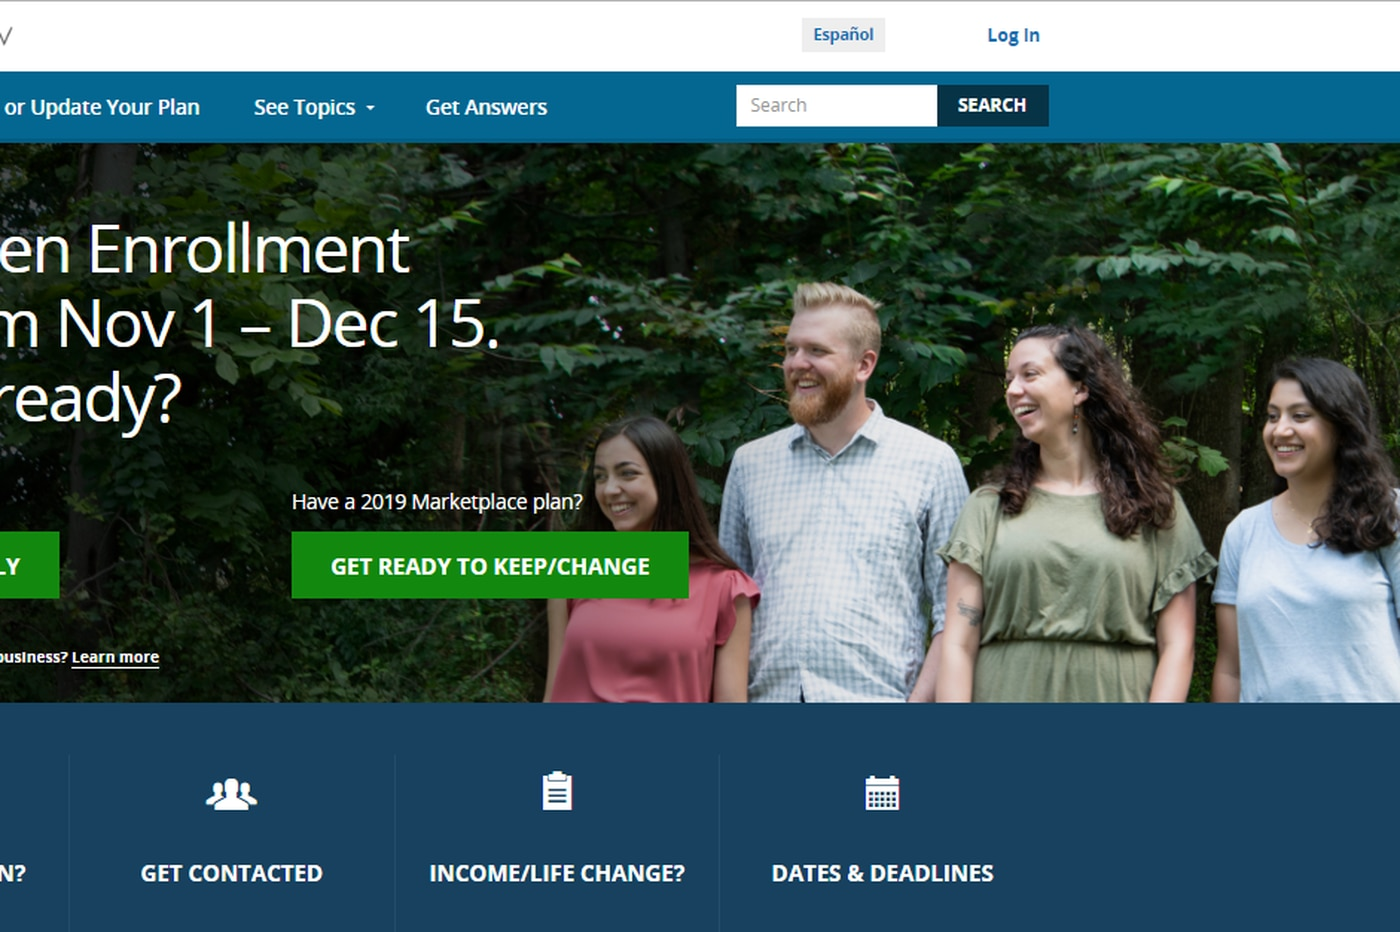 Healthcare.gov is opening for business Nov. 1. Here are some health insurance shopping tips.